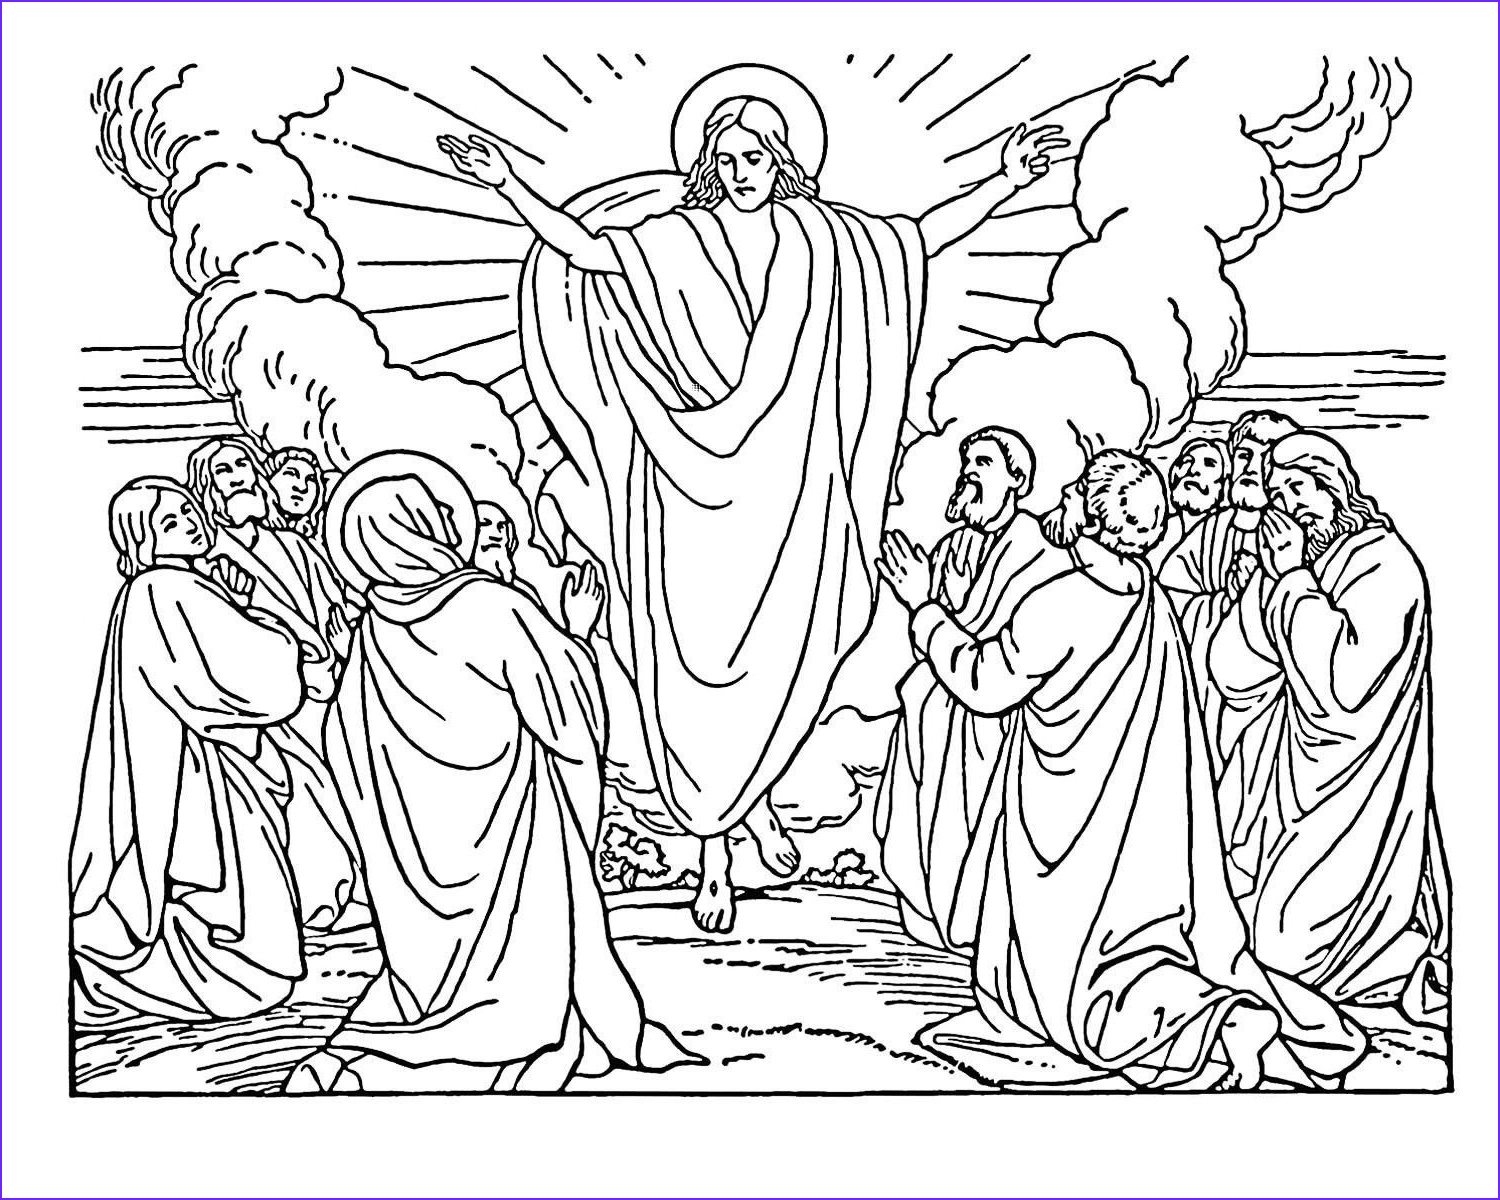 Spiritual Coloring Pages Unique Photos Free Printable Bible Coloring Pages for Kids